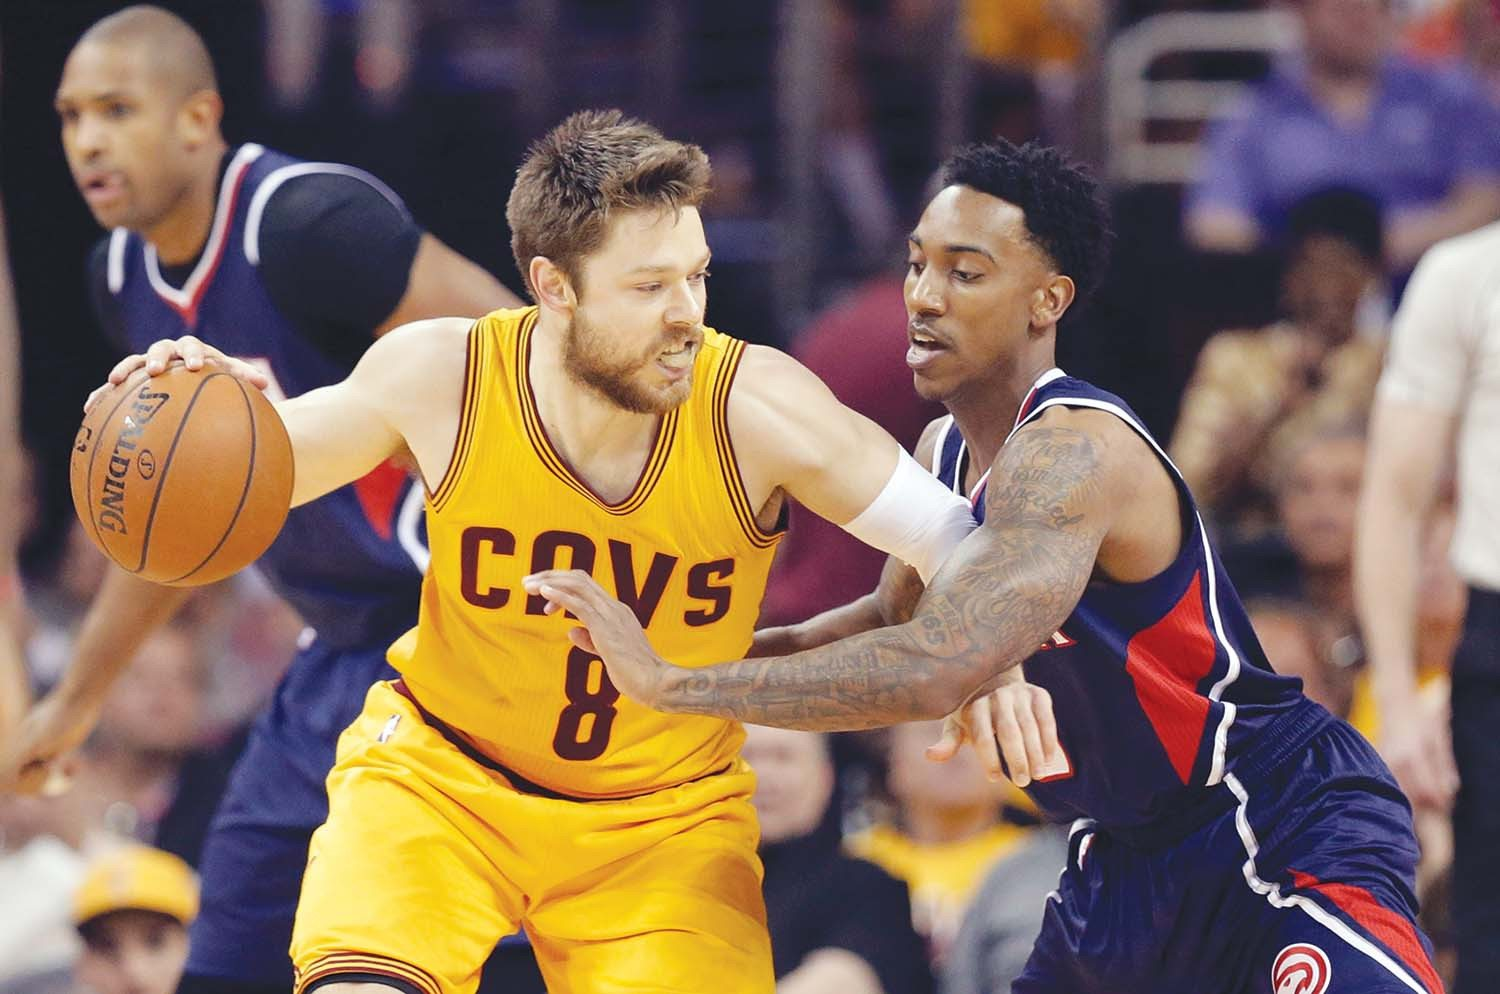 Tony Dejak/AP file photoSt. Mary's alum Matthew Dellavedova